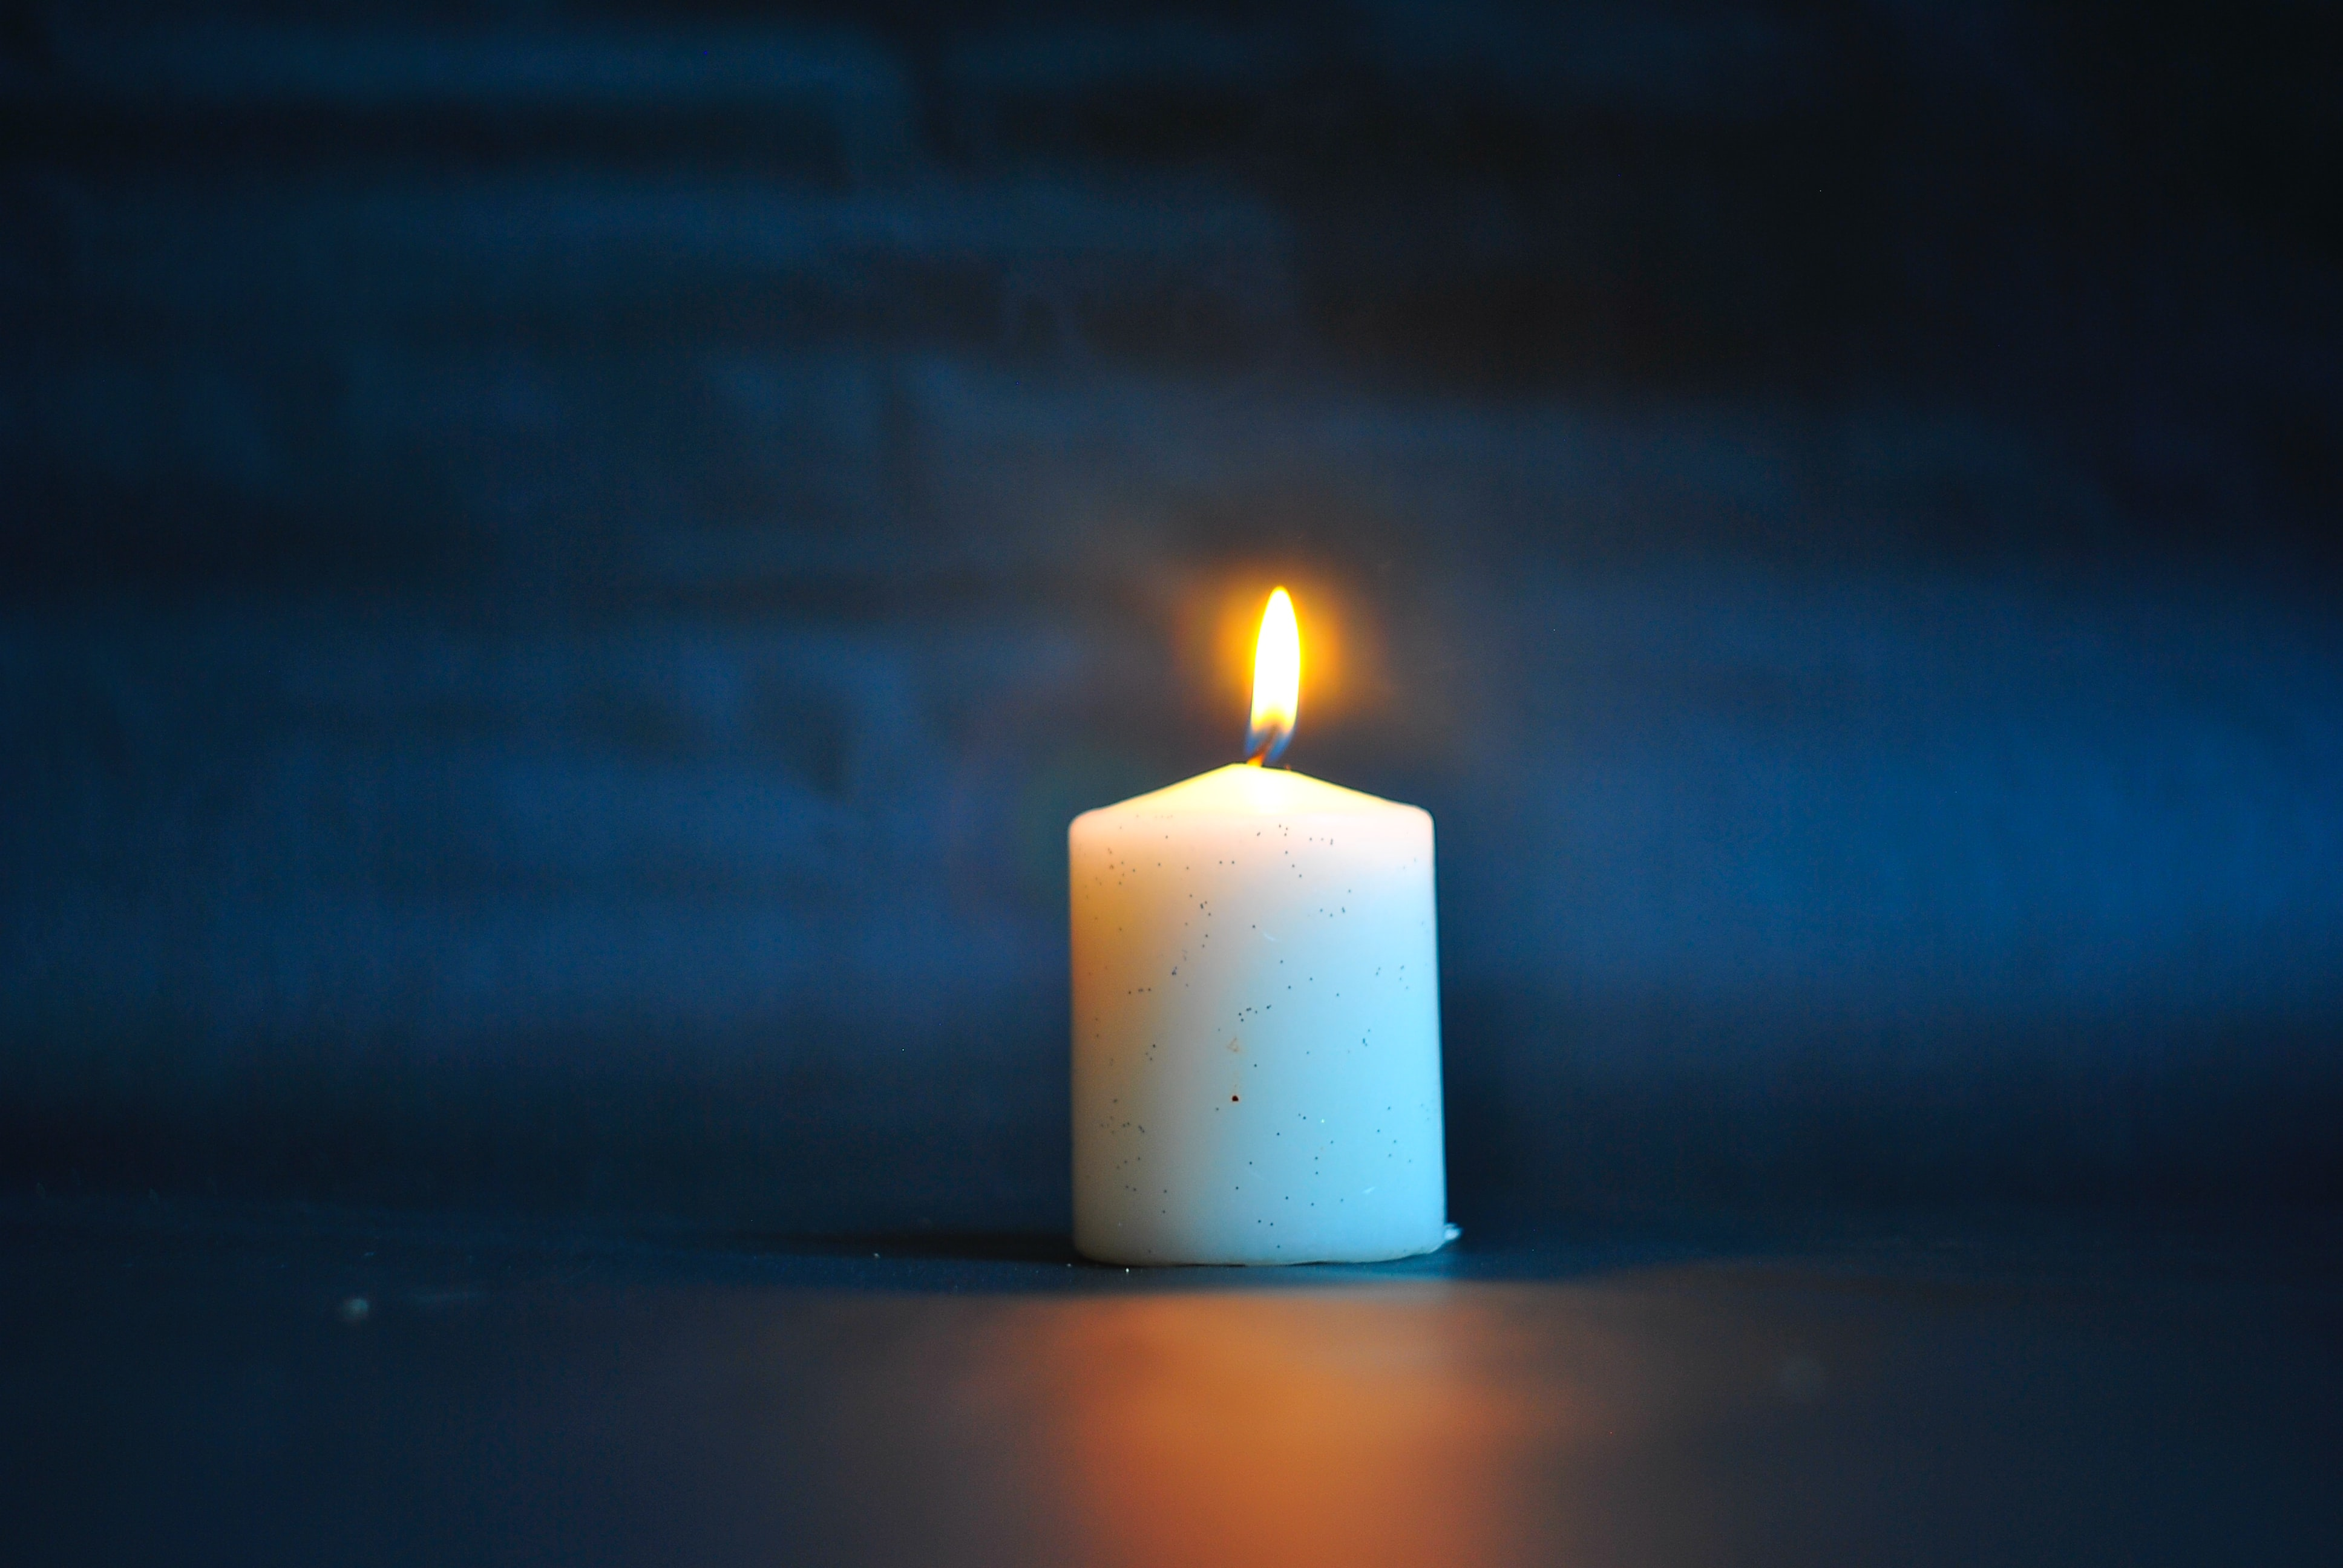 A white pillar candle is lit against a dark blue background.